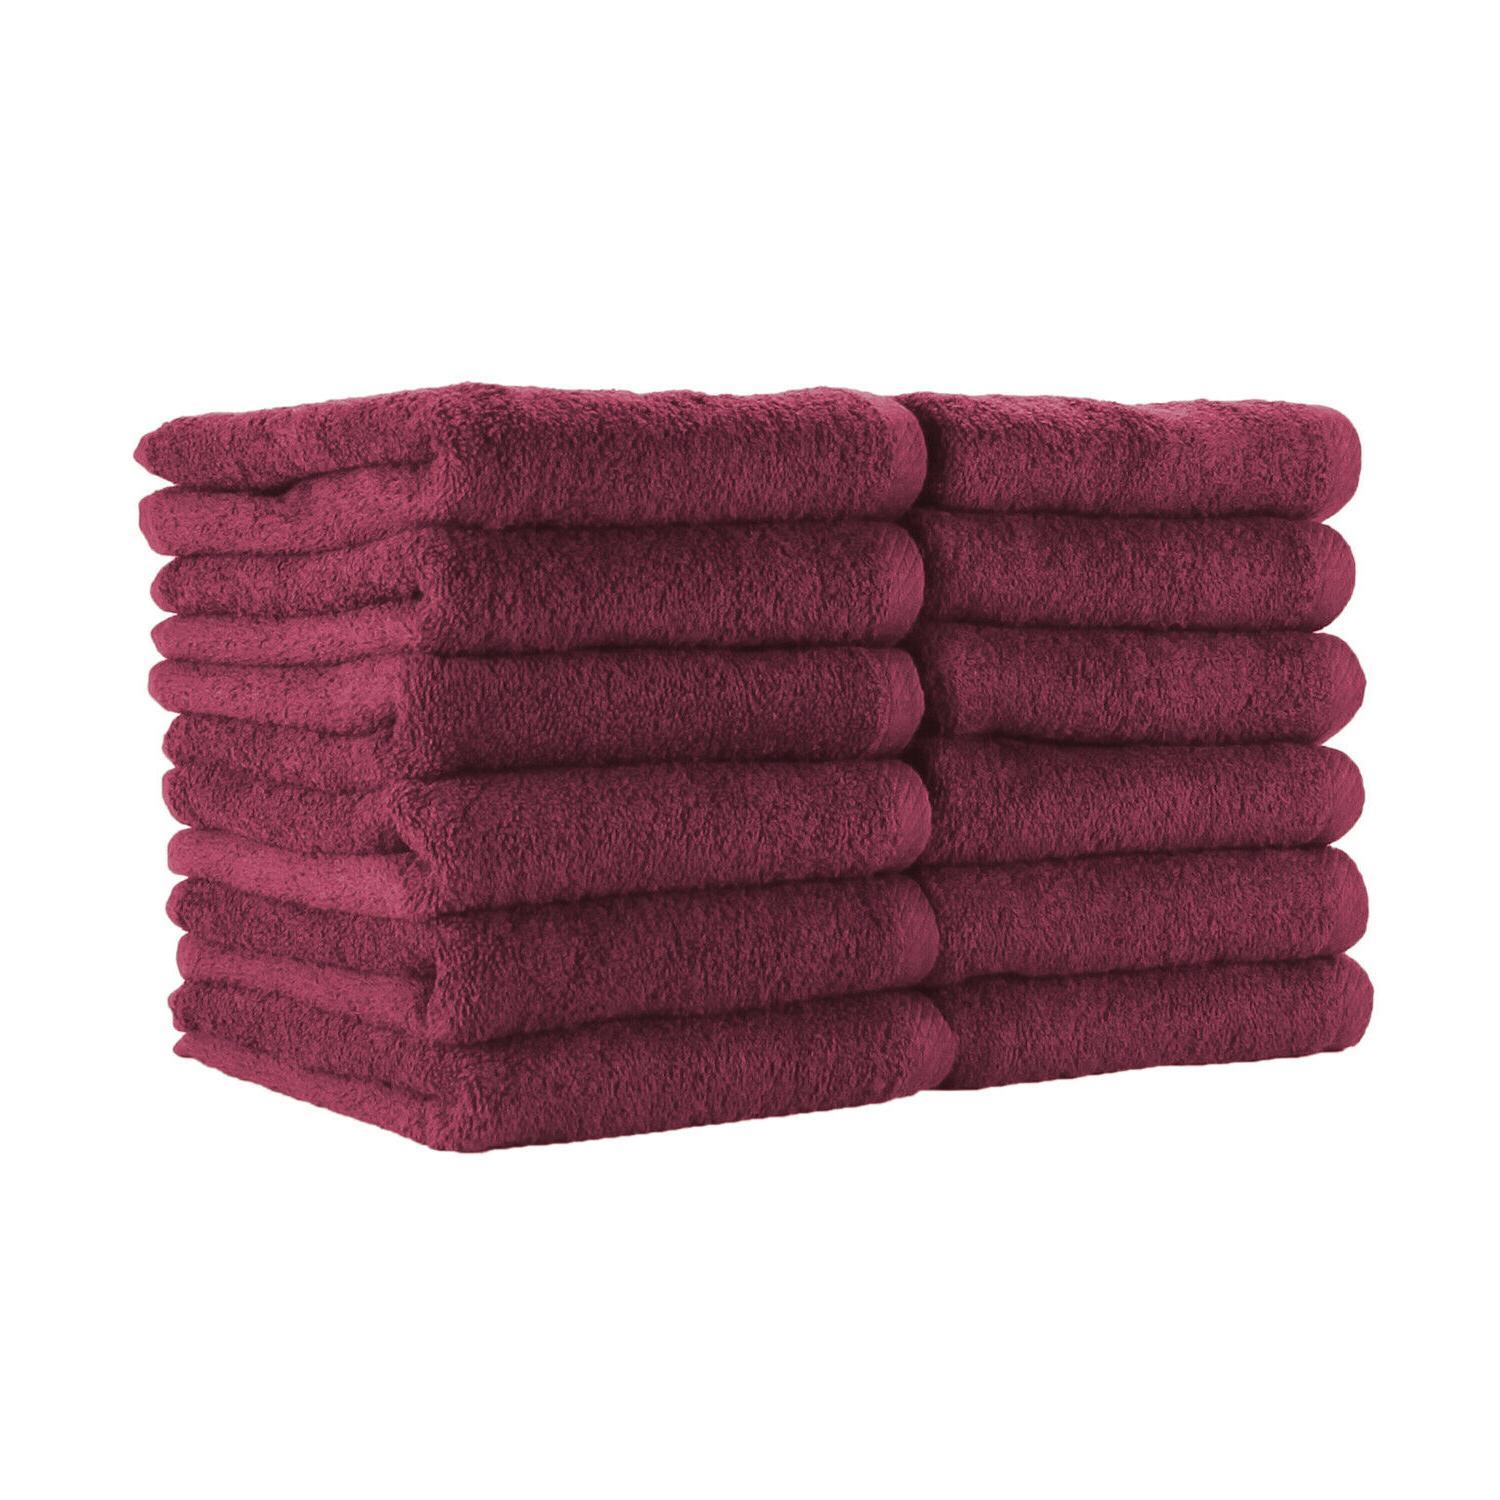 Towels -16 Color Options - FREE